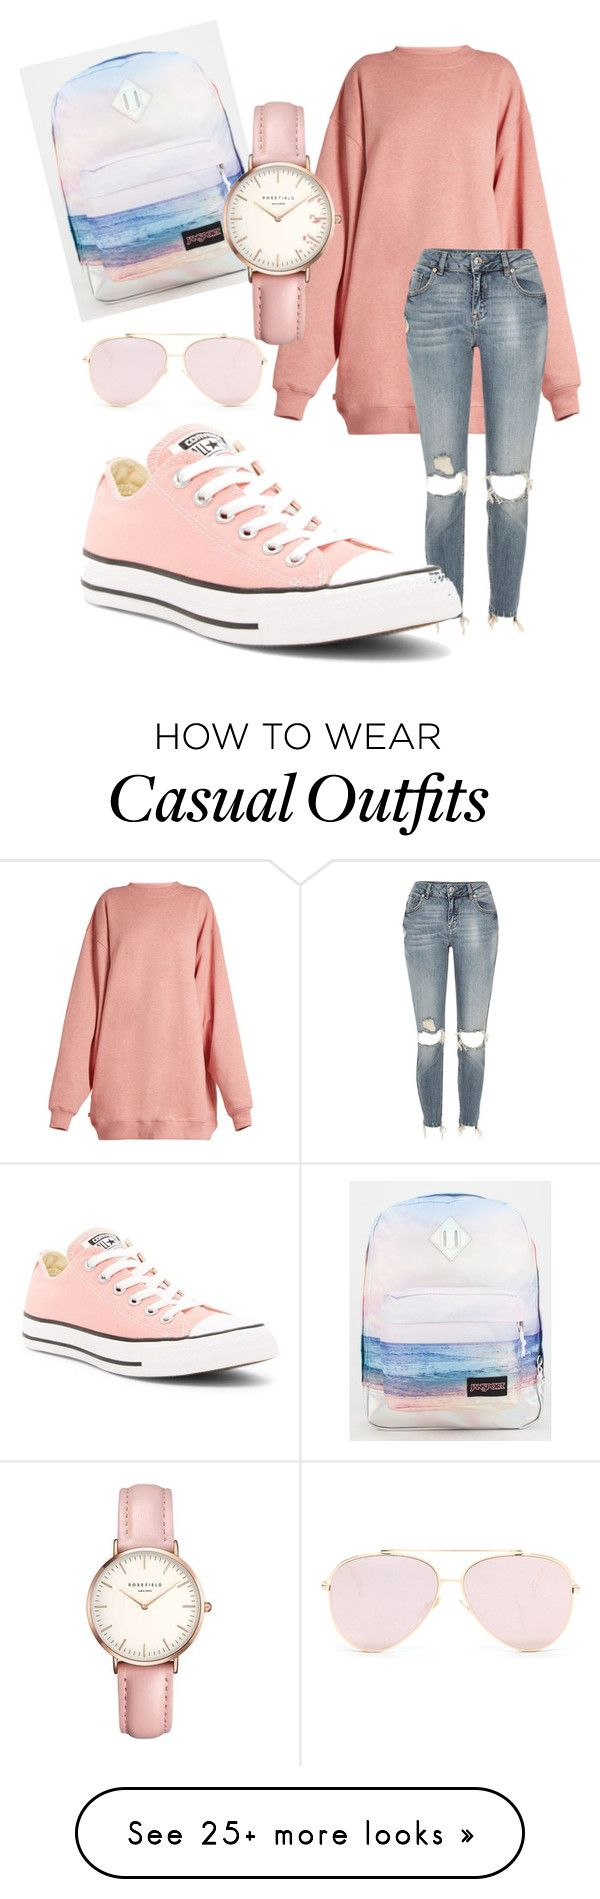 """Pink Casual"" by csyork on Polyvore featuring Acne Studios, River Island, JanSport, Converse and Topshop"